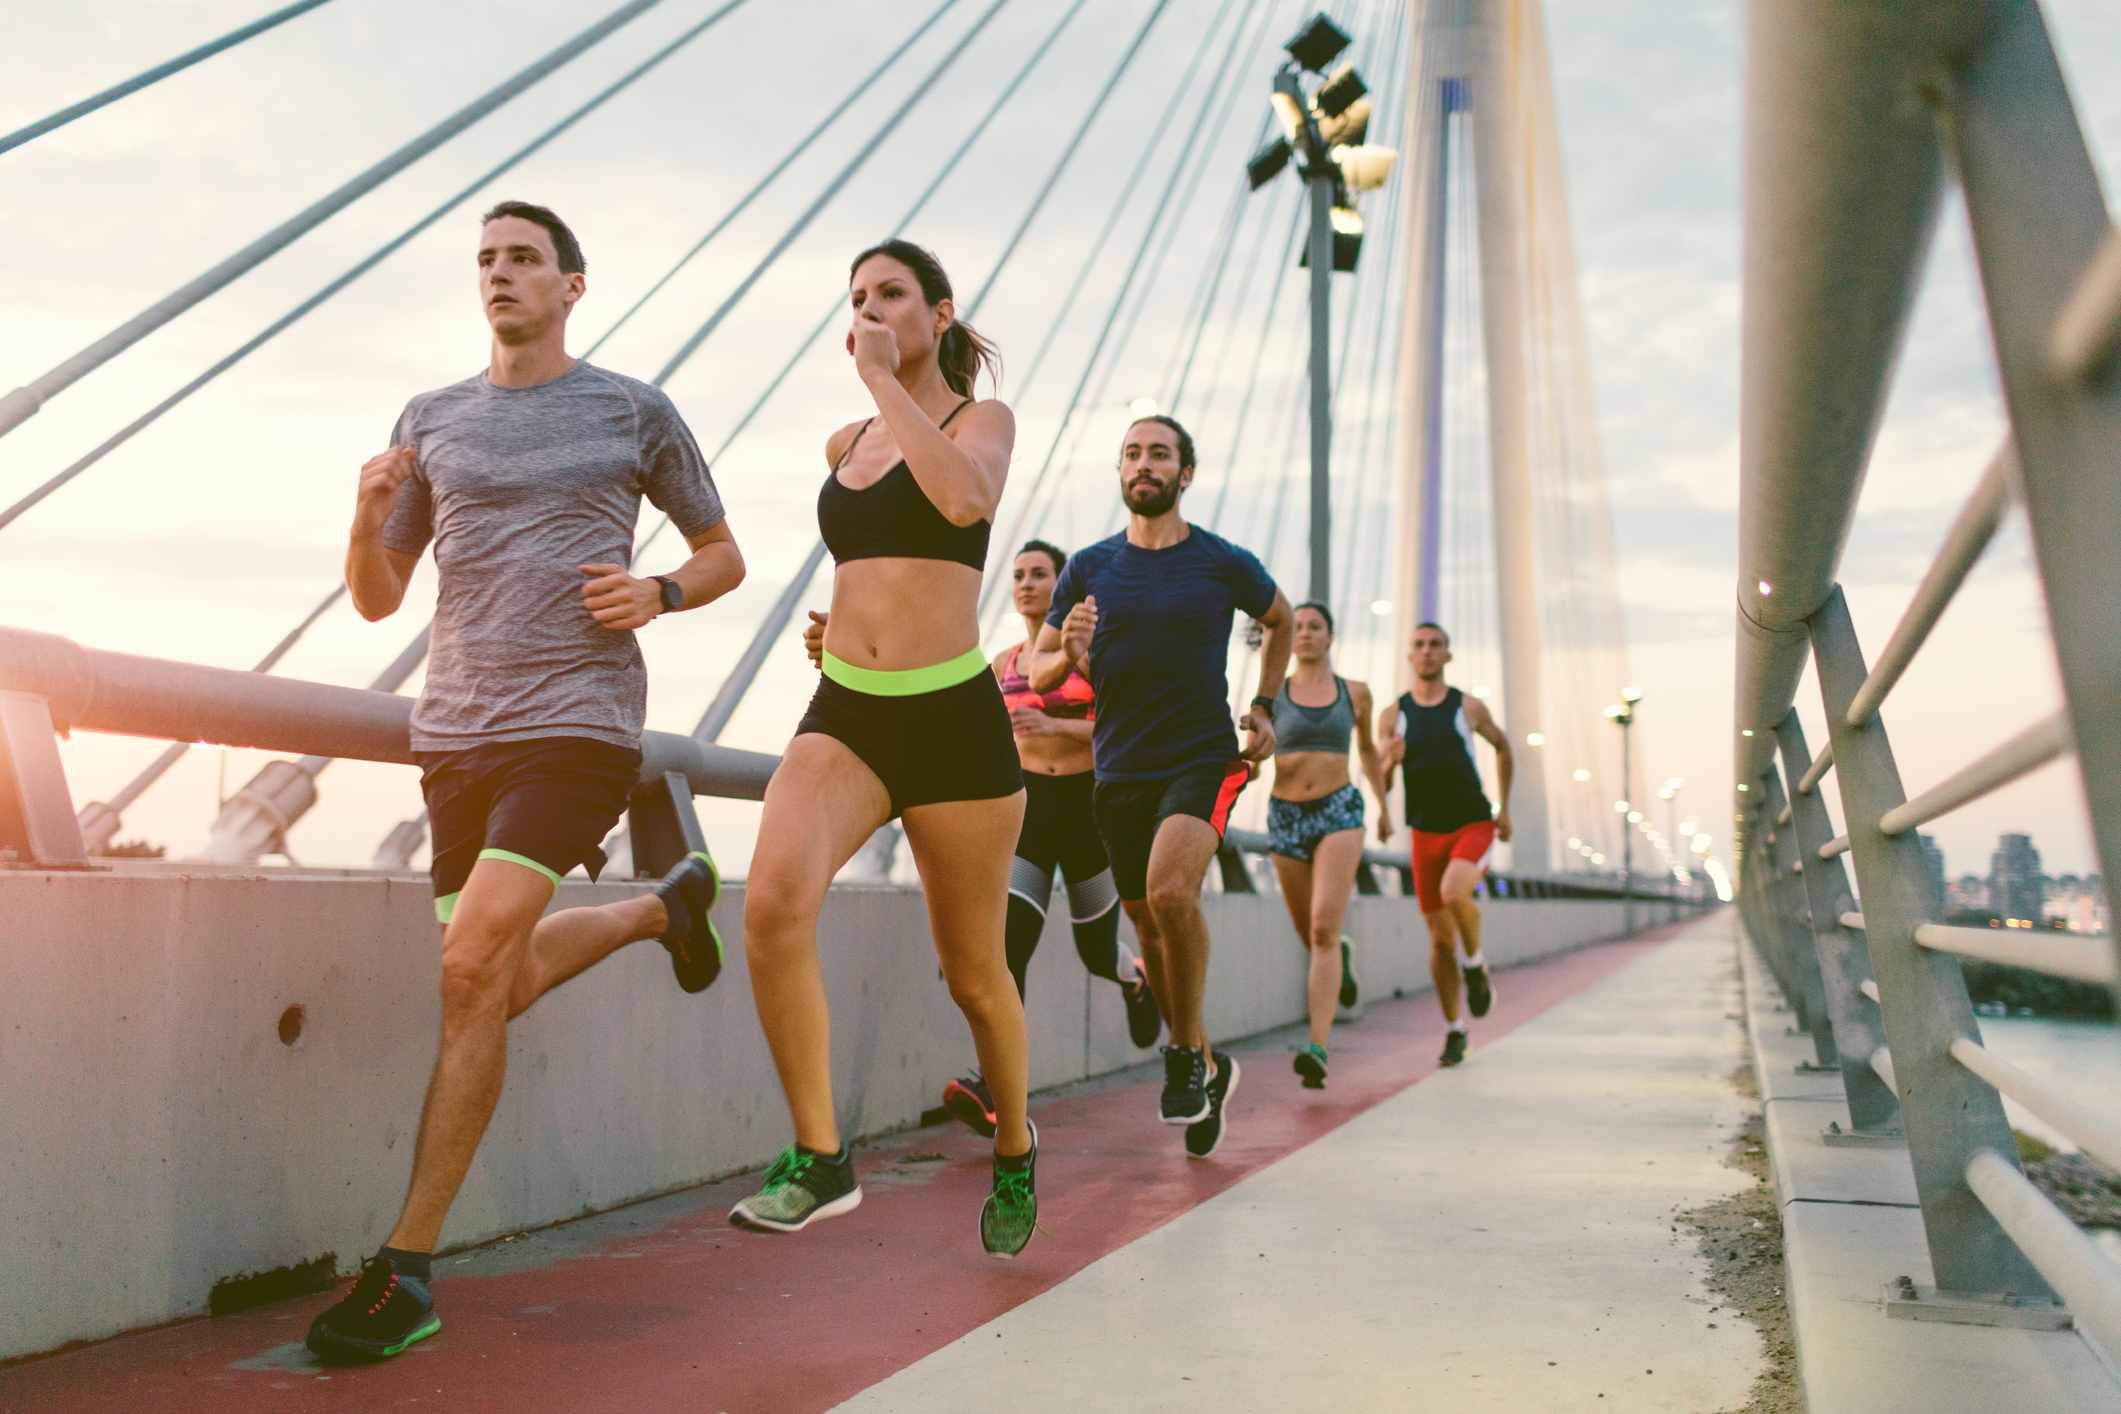 c9a3a279b1567 7 Tips for Getting Back to Running After a Long Break